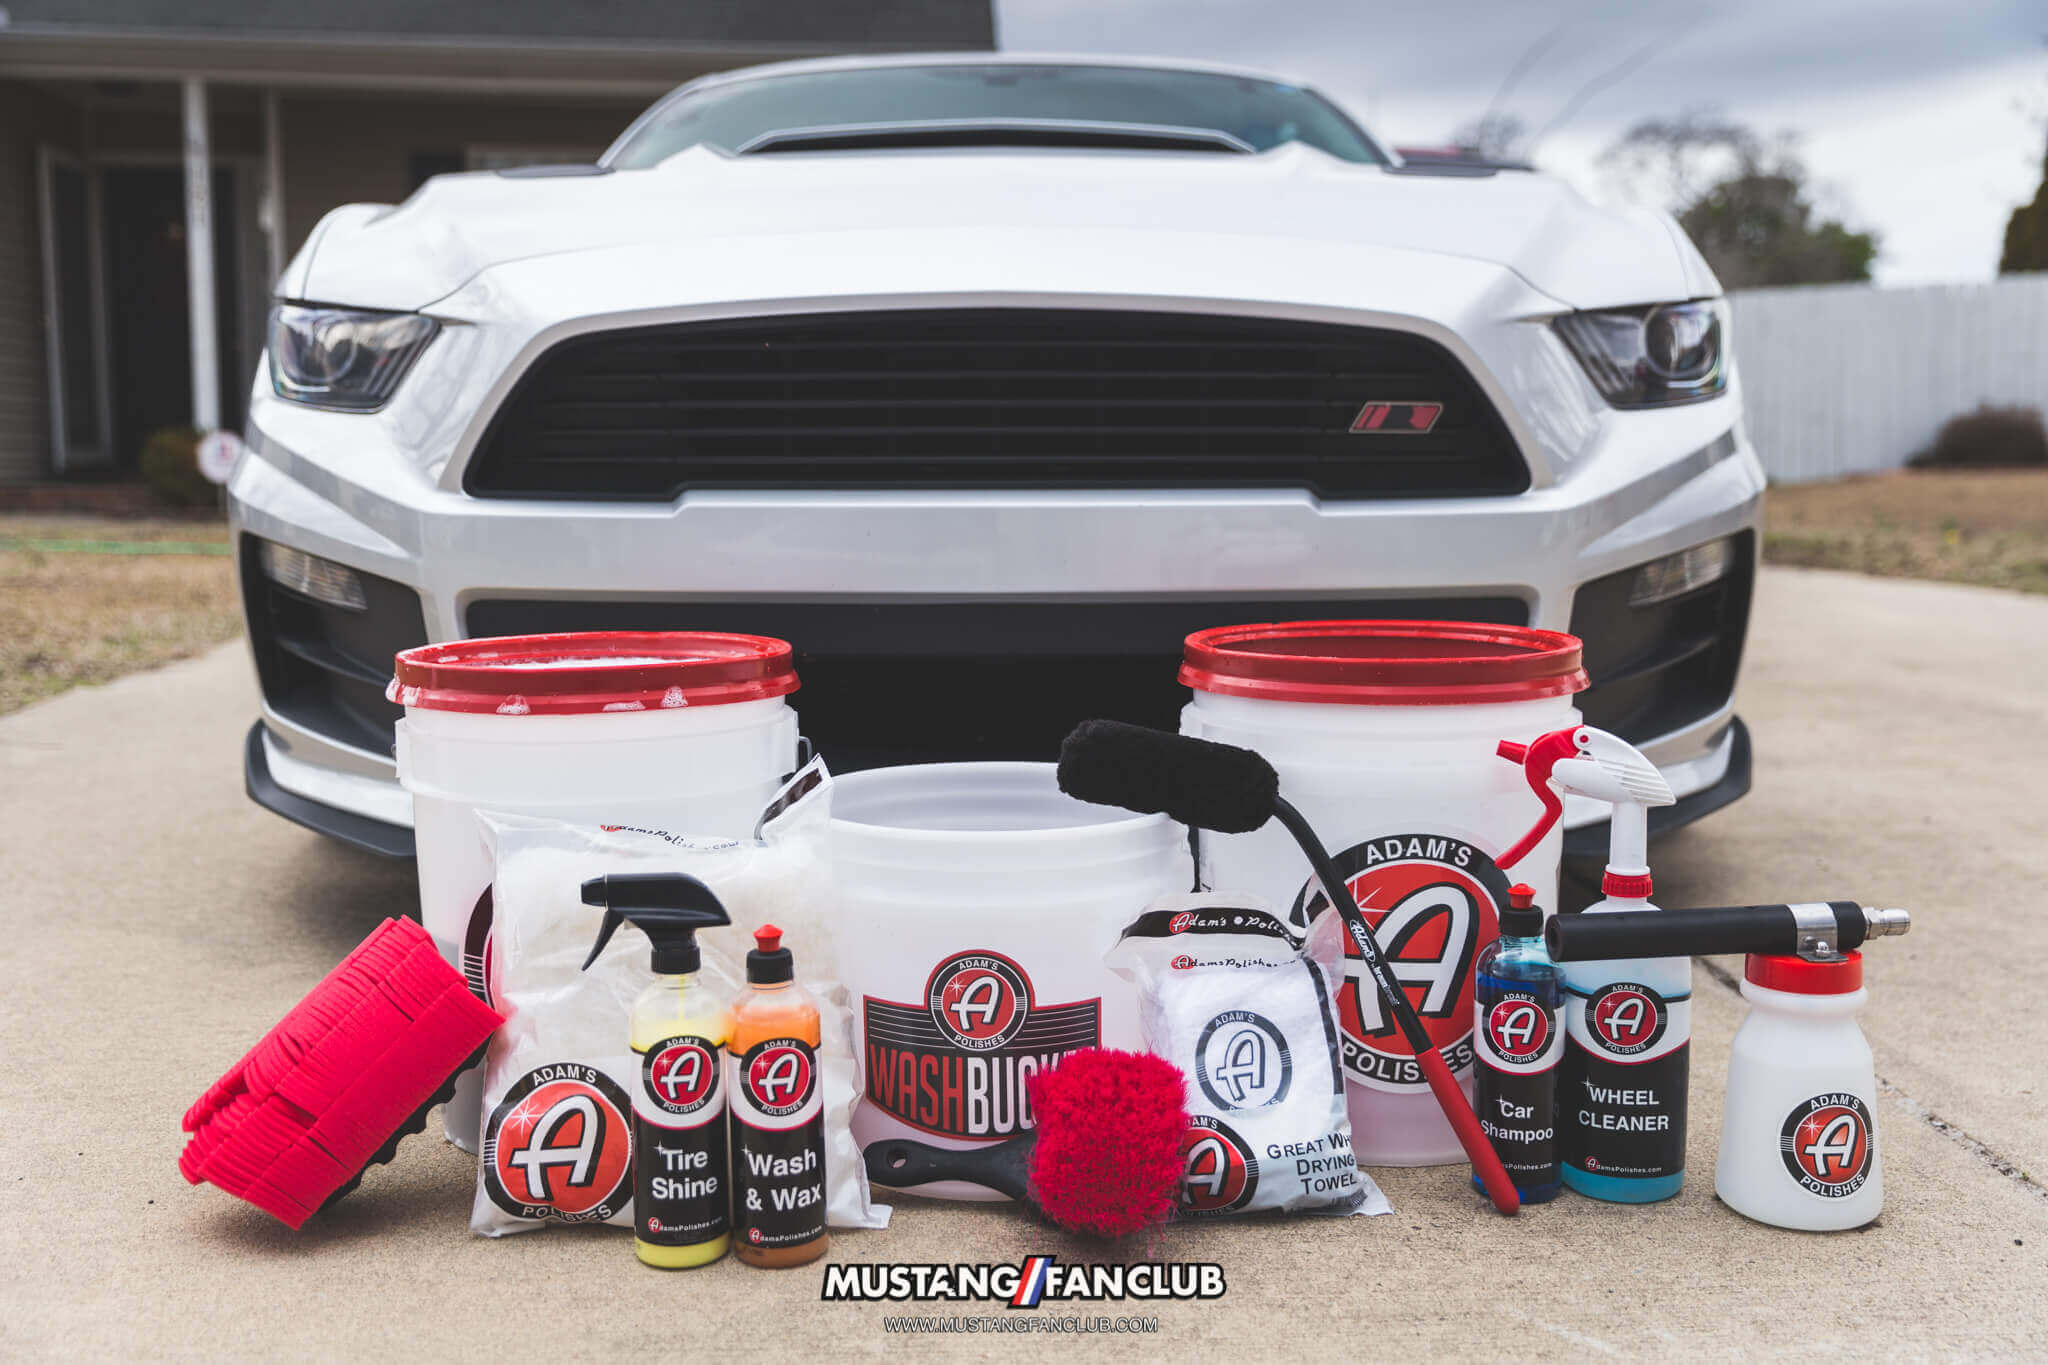 adam's polishes detail kit mustang